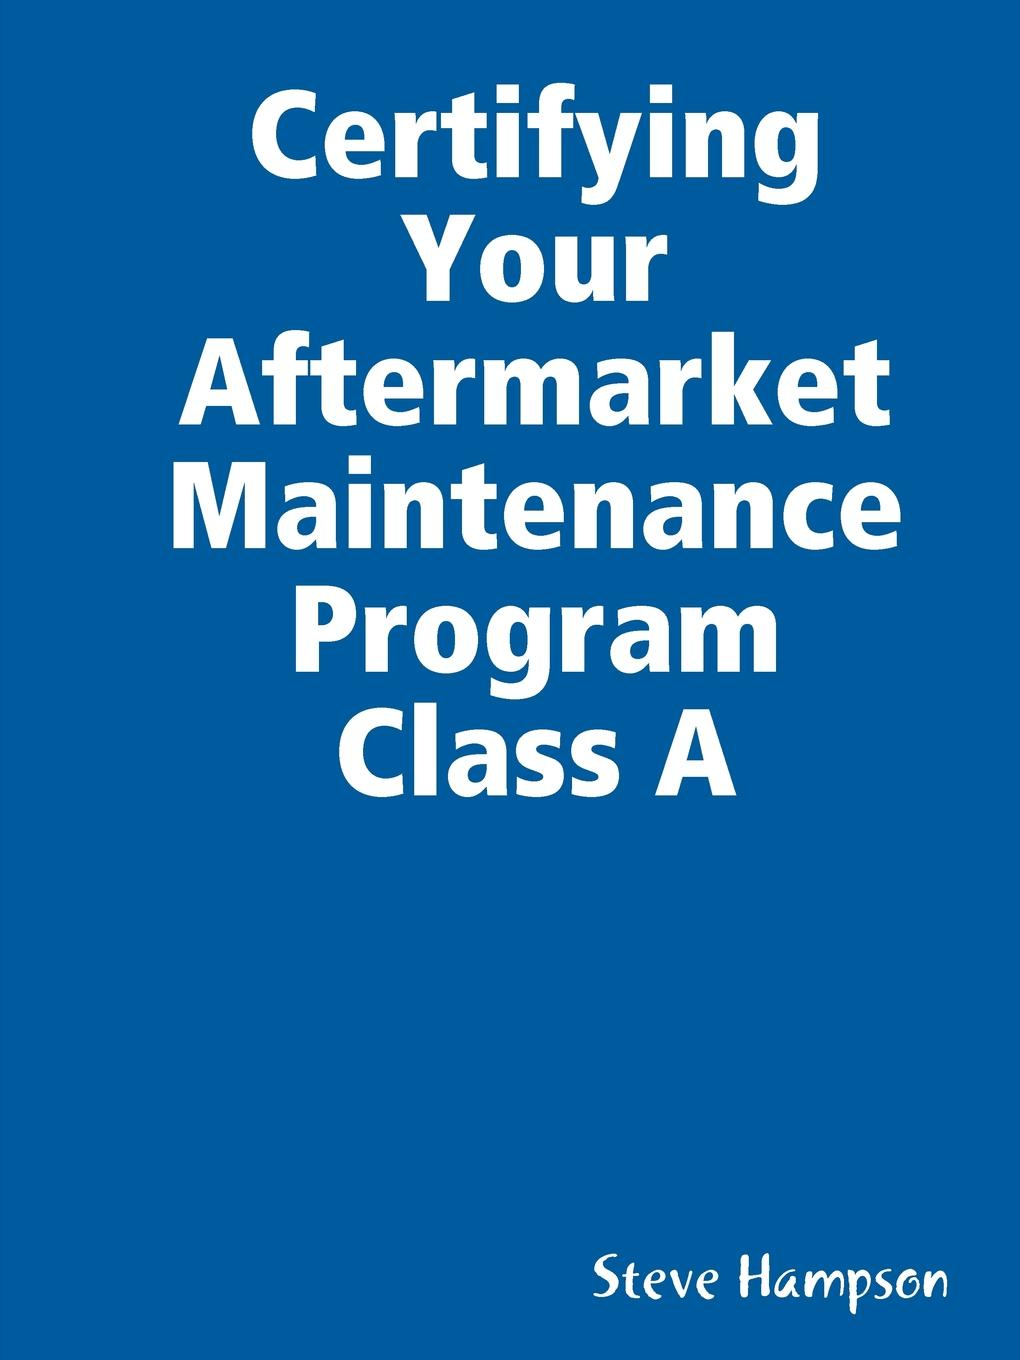 Steve Hampson Certifying Your Aftermarket Maintenance Program Class A microgrid architectures and maintenance